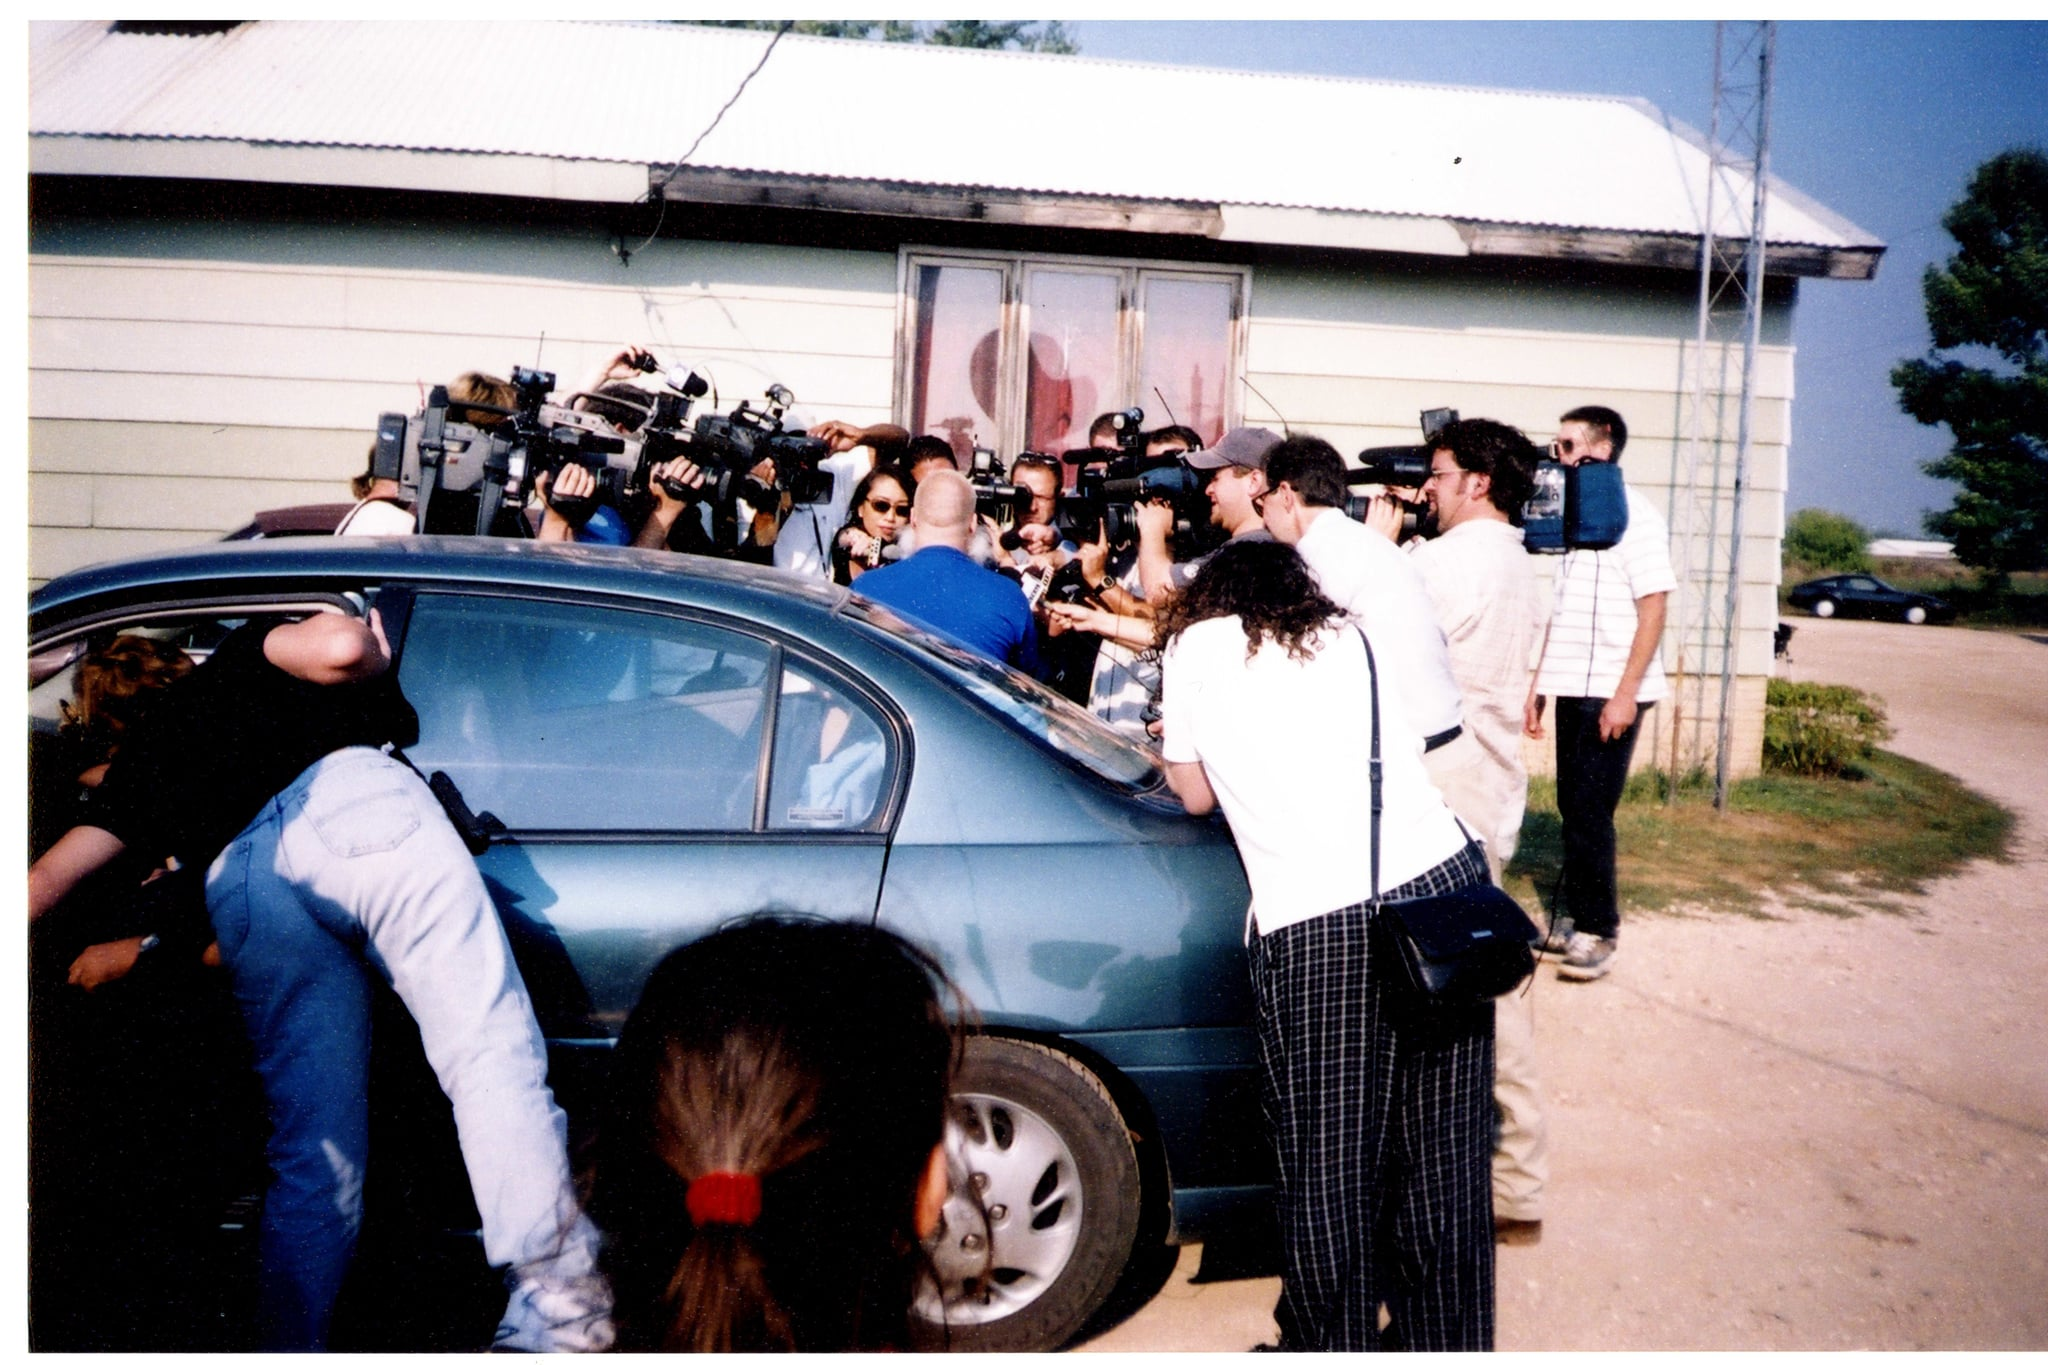 MAKING A MURDERER, Steven Avery (back to camera), (Season 1, aired Dec. 18, 2015). Netflix / Courtesy: Everett Collection